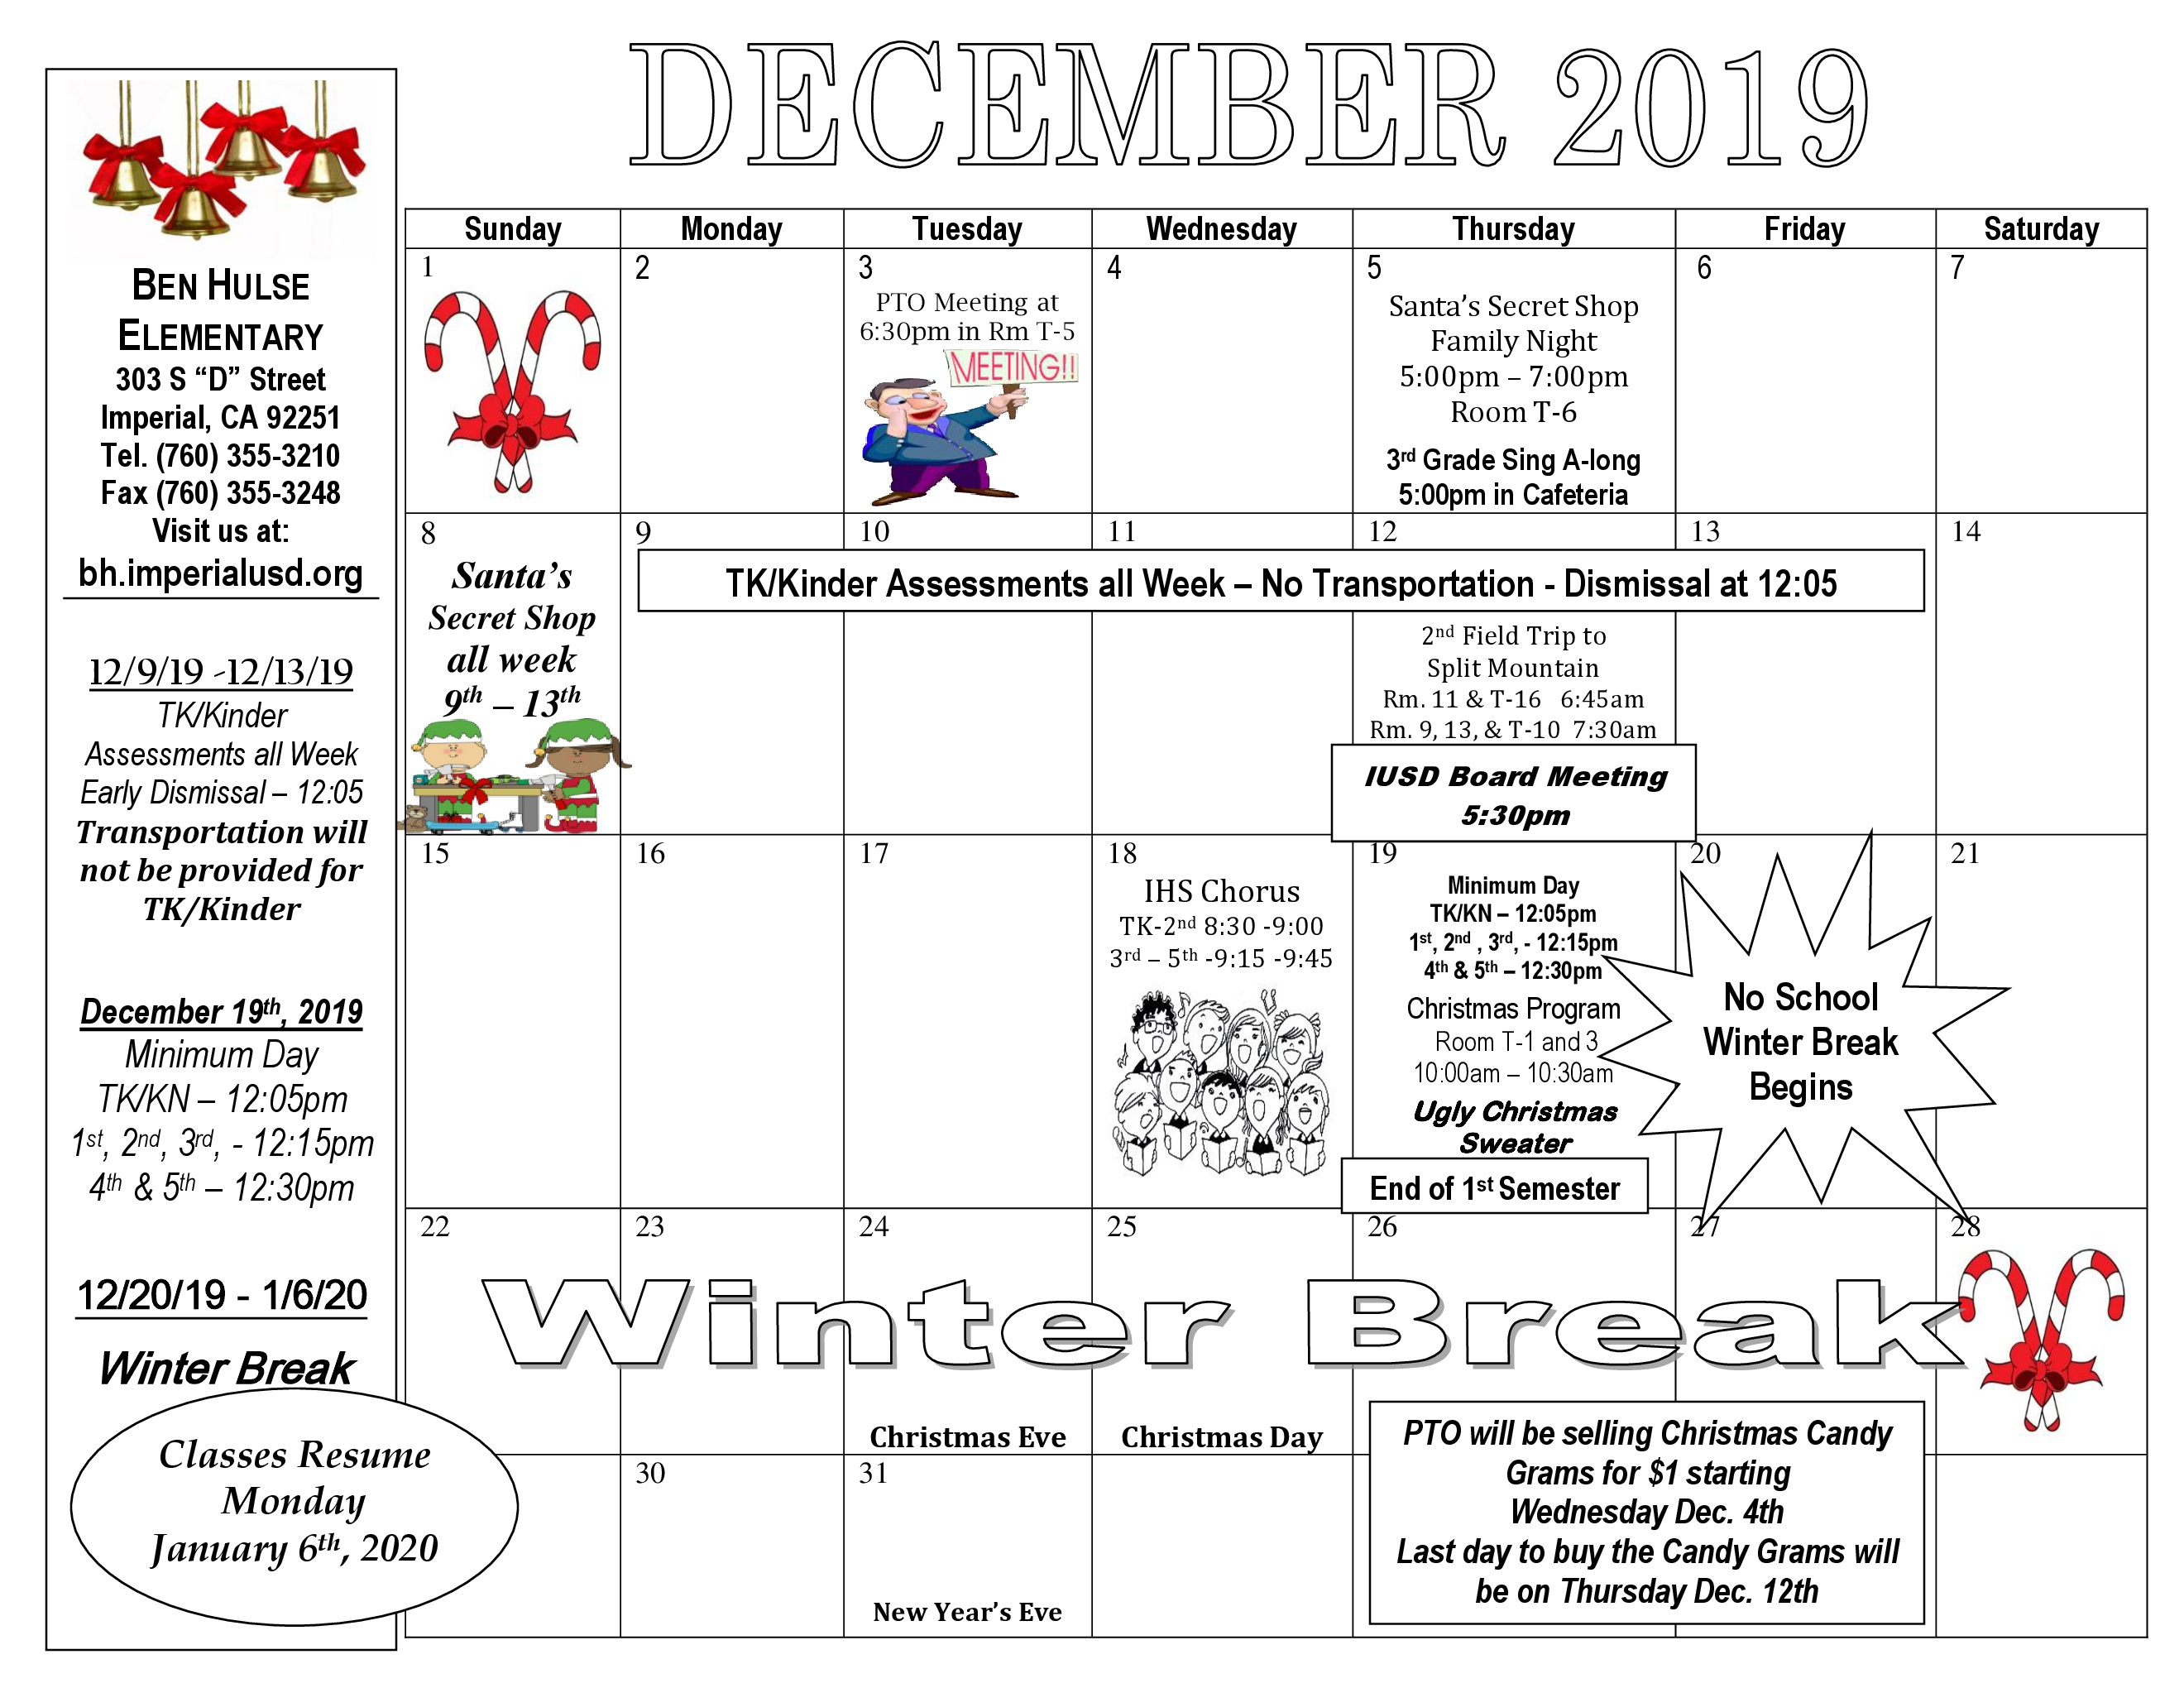 Ben Hulse Elementary School  Monthly Calendar & Activities regarding Tl Waggoner Calendar